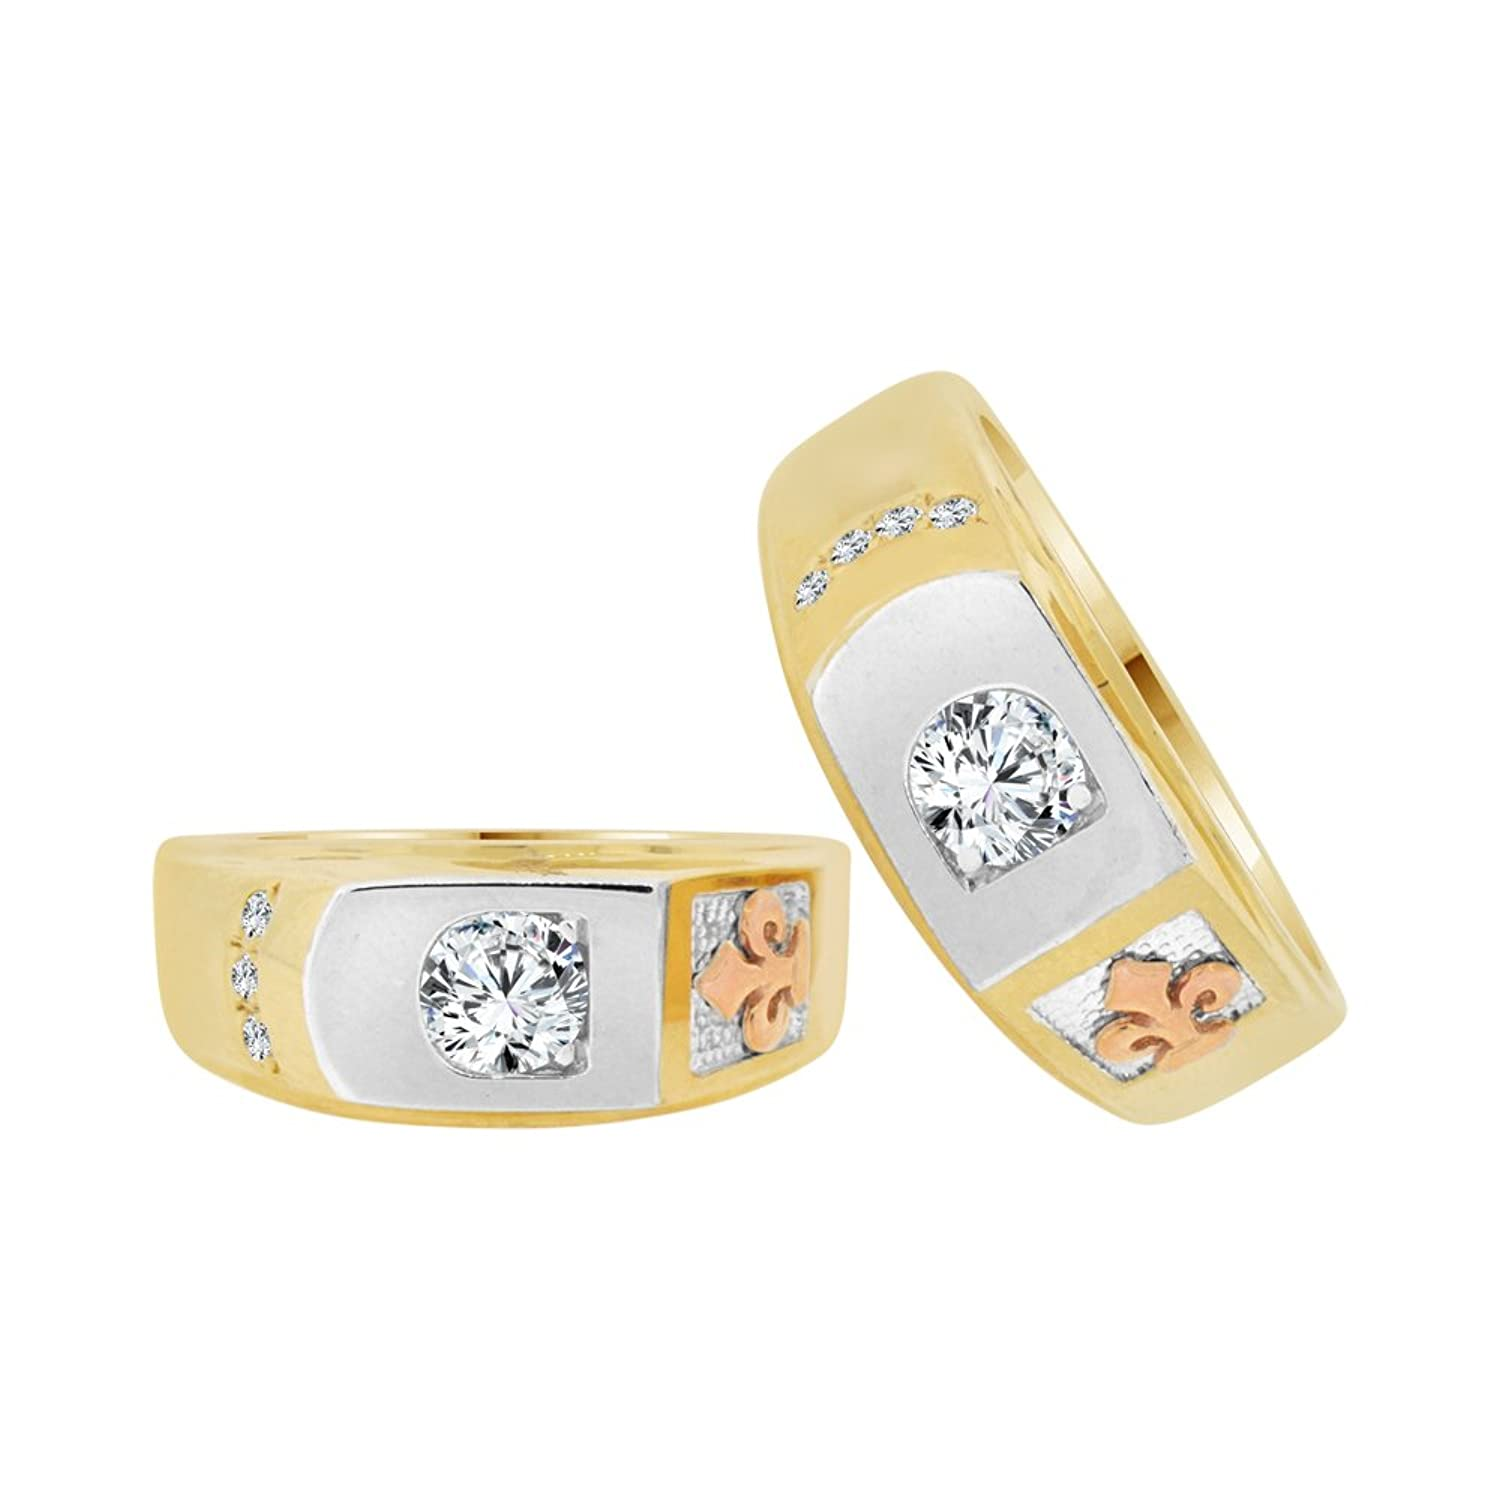 14k Tricolor Gold, His & Her Duo 2 Piece Matching Bands Ring Set Created CZ Crystals